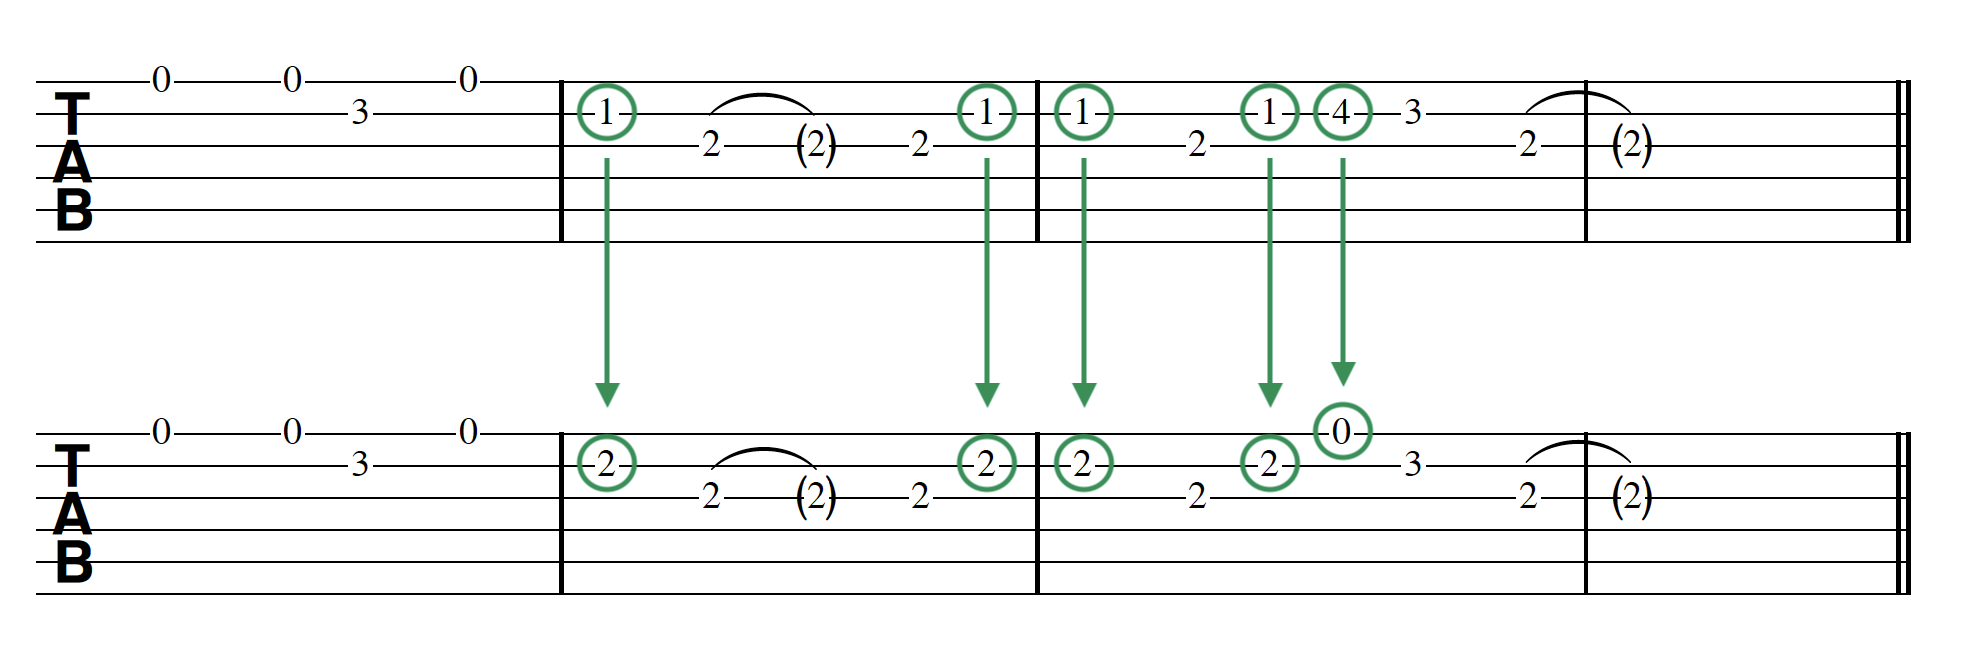 Parallel Key Modulation Melody Converted  2